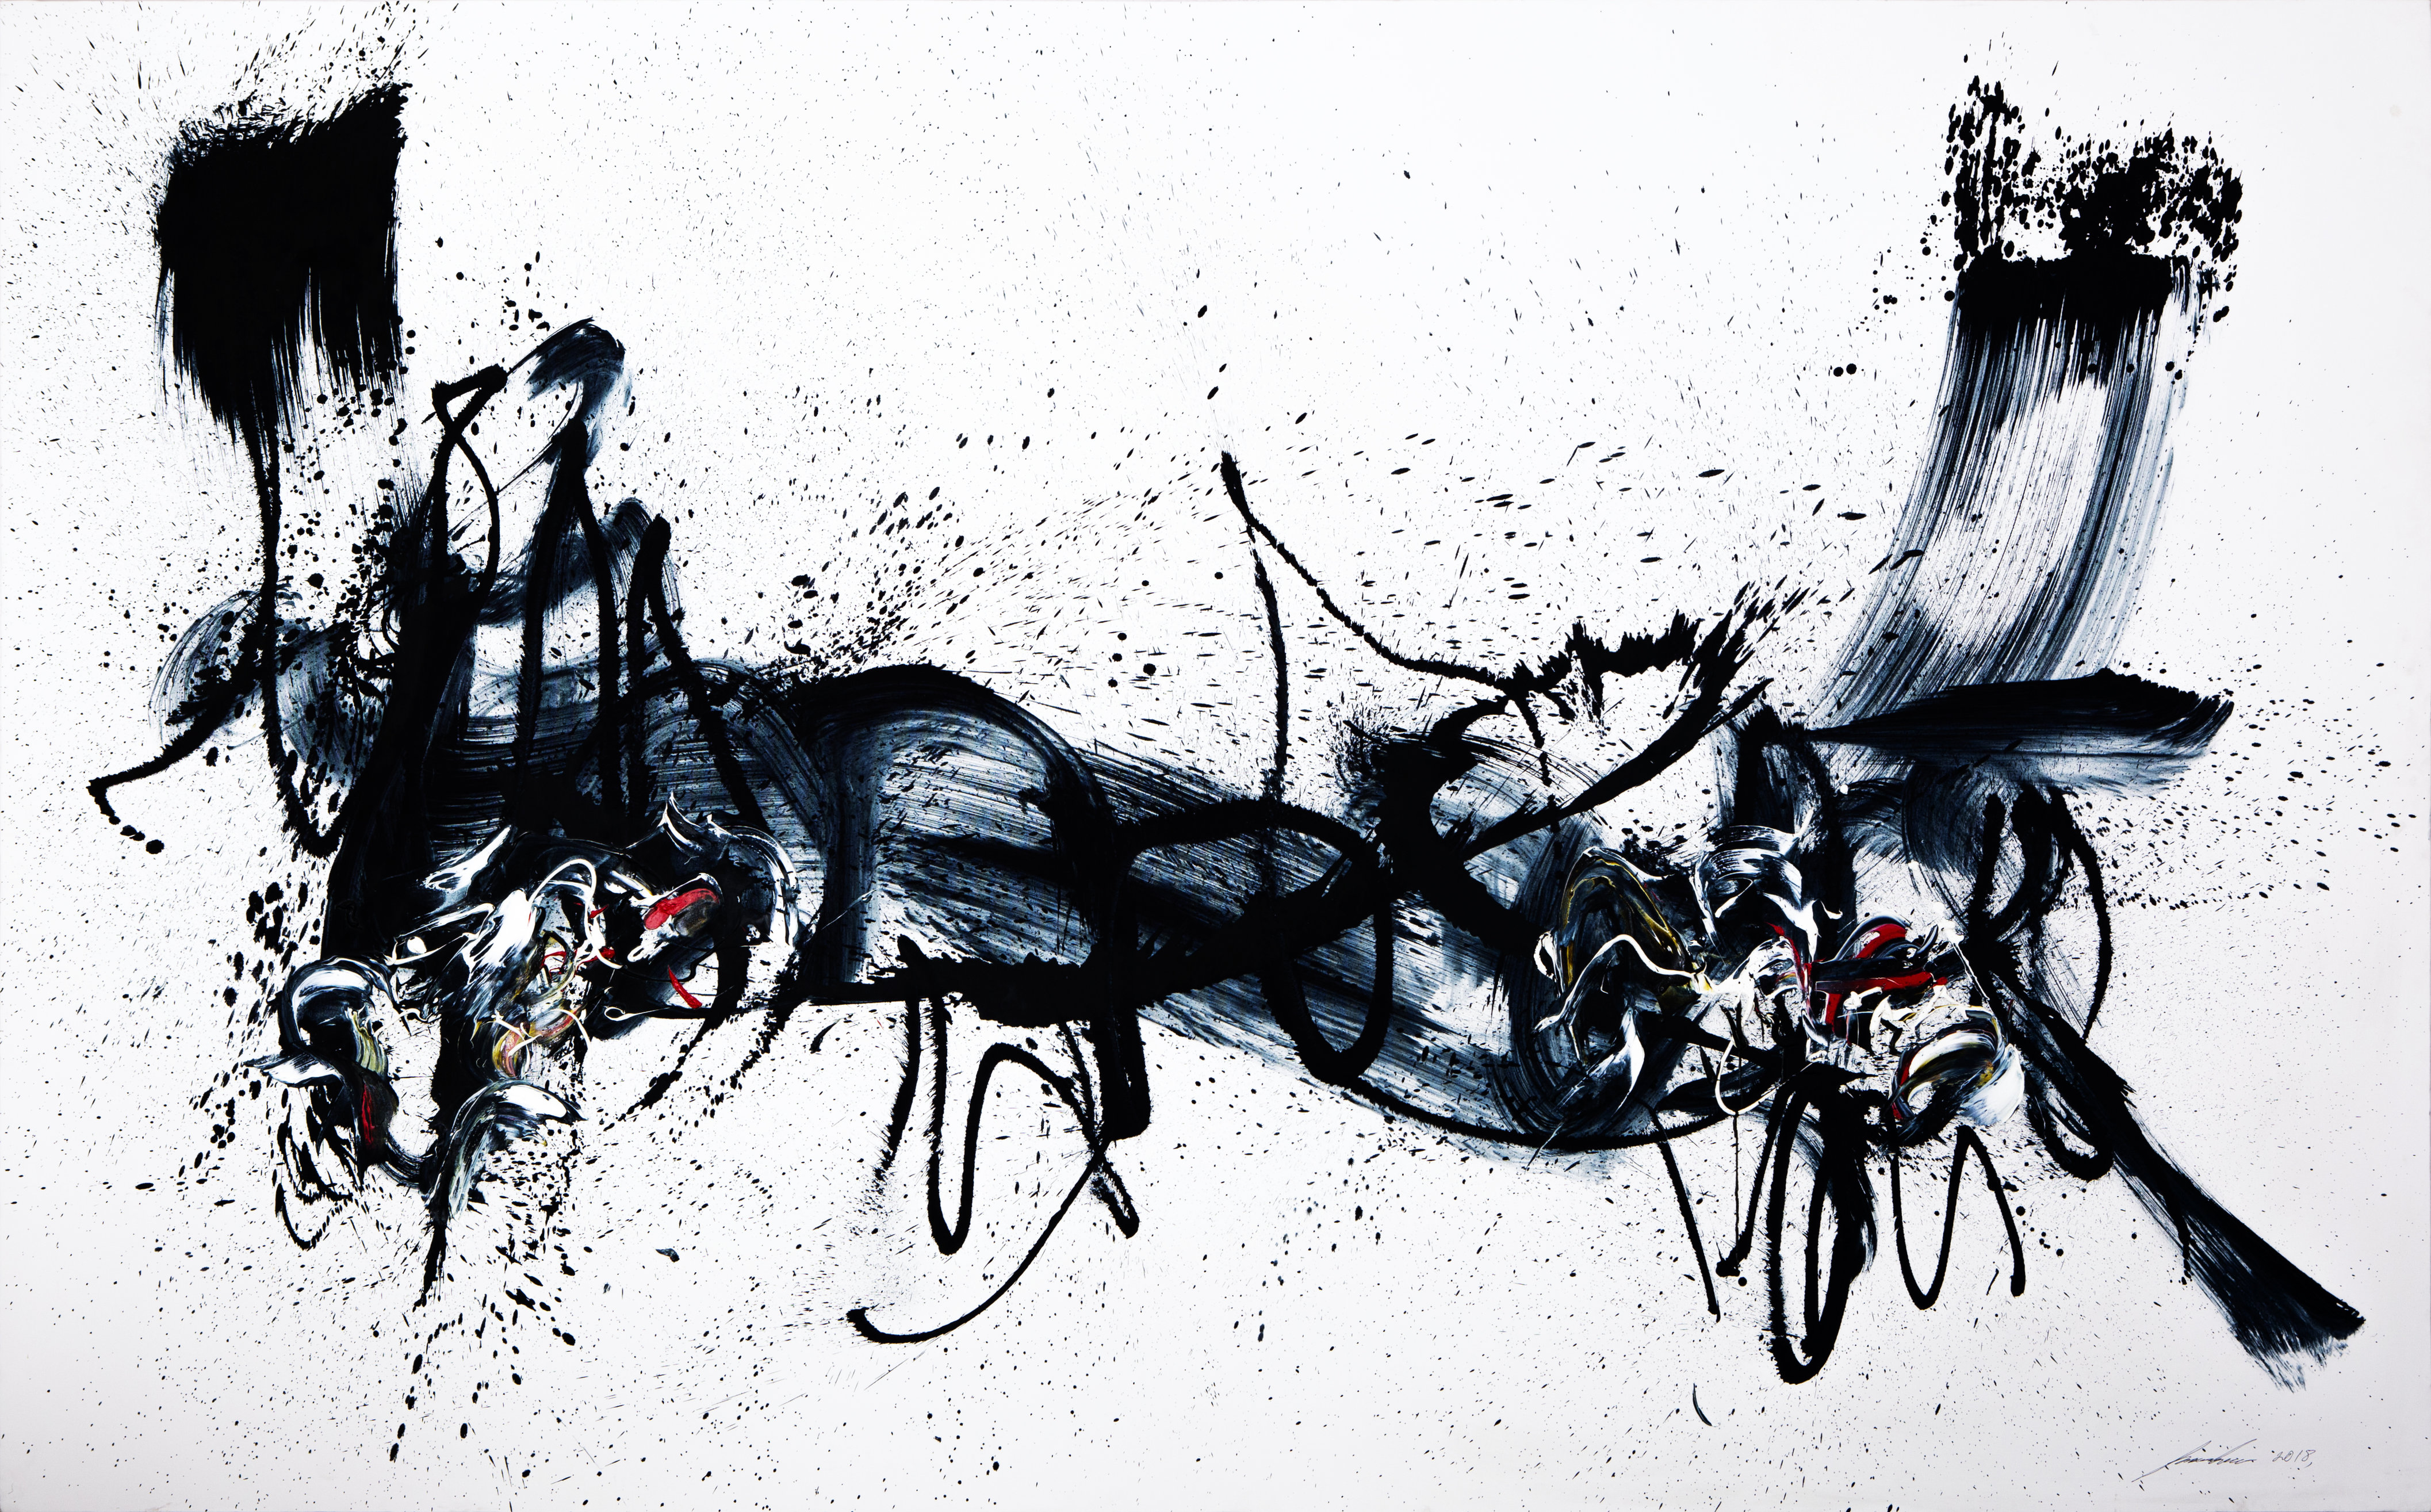 Emotion in Motion artwork by Vahan Roumelian - art listed for sale on Artplode